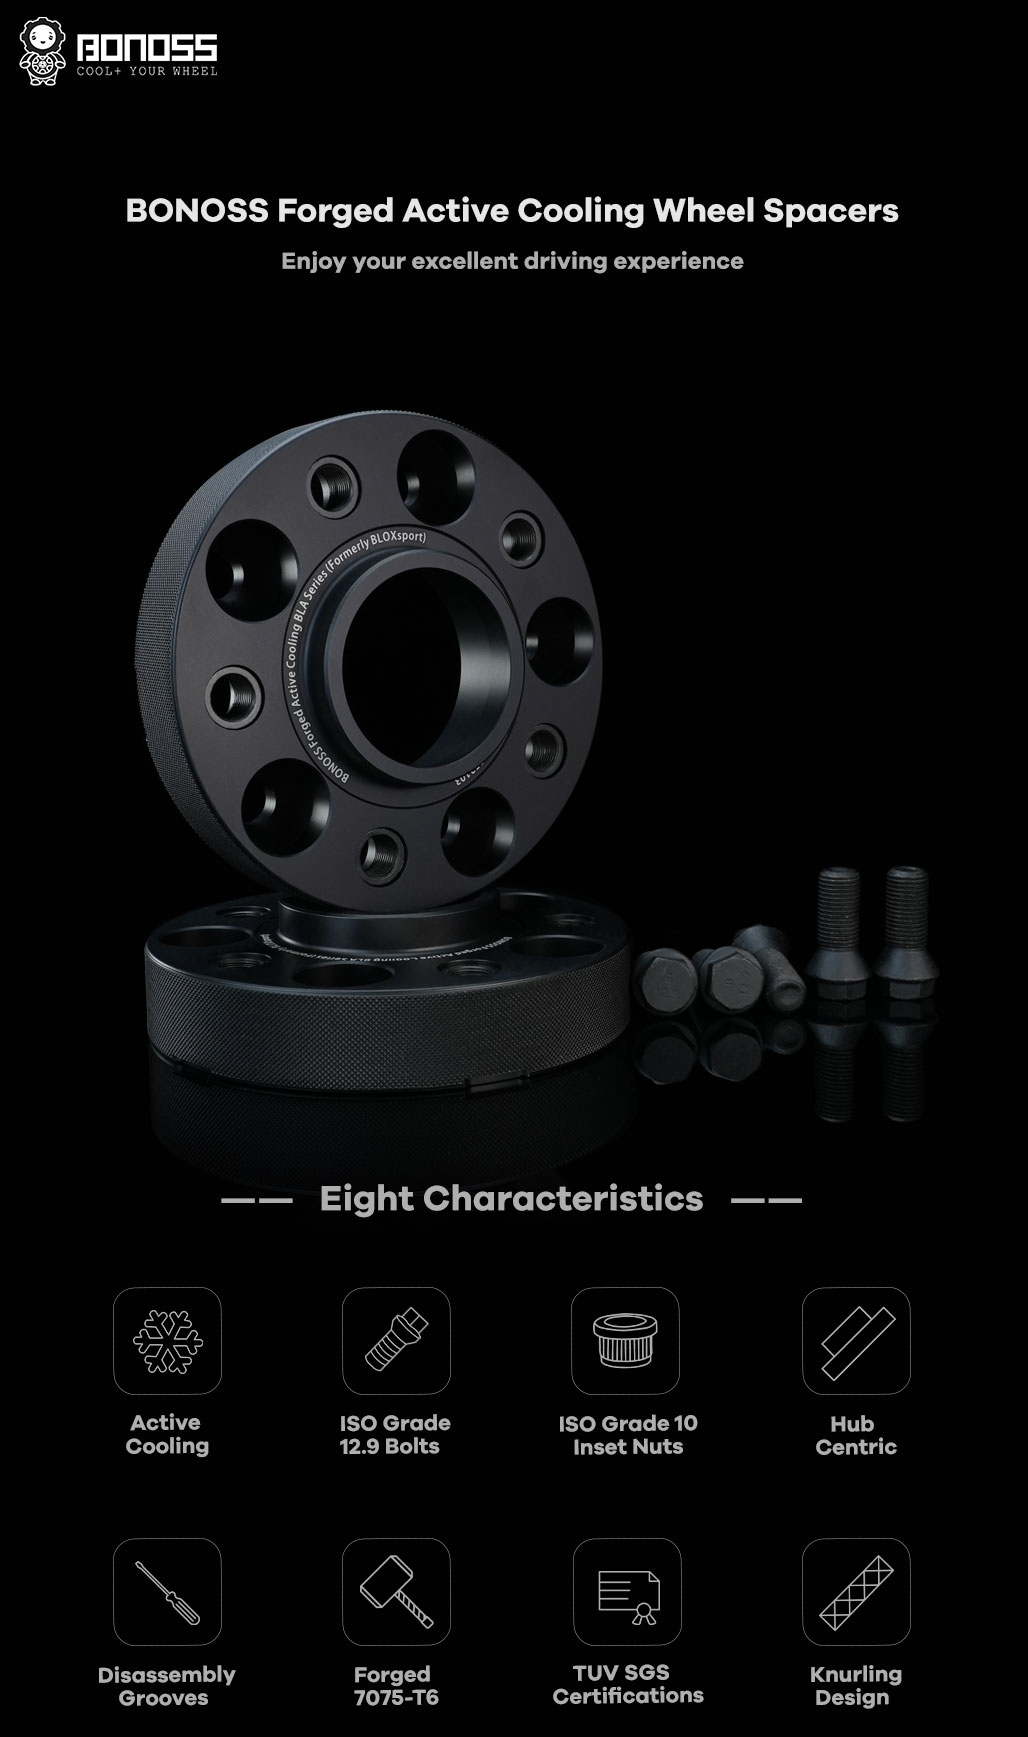 AL7075-T6-BONOSS-forged-active-cooling-5-Lug-wheel-spacers-aston-martin-by-lulu-1